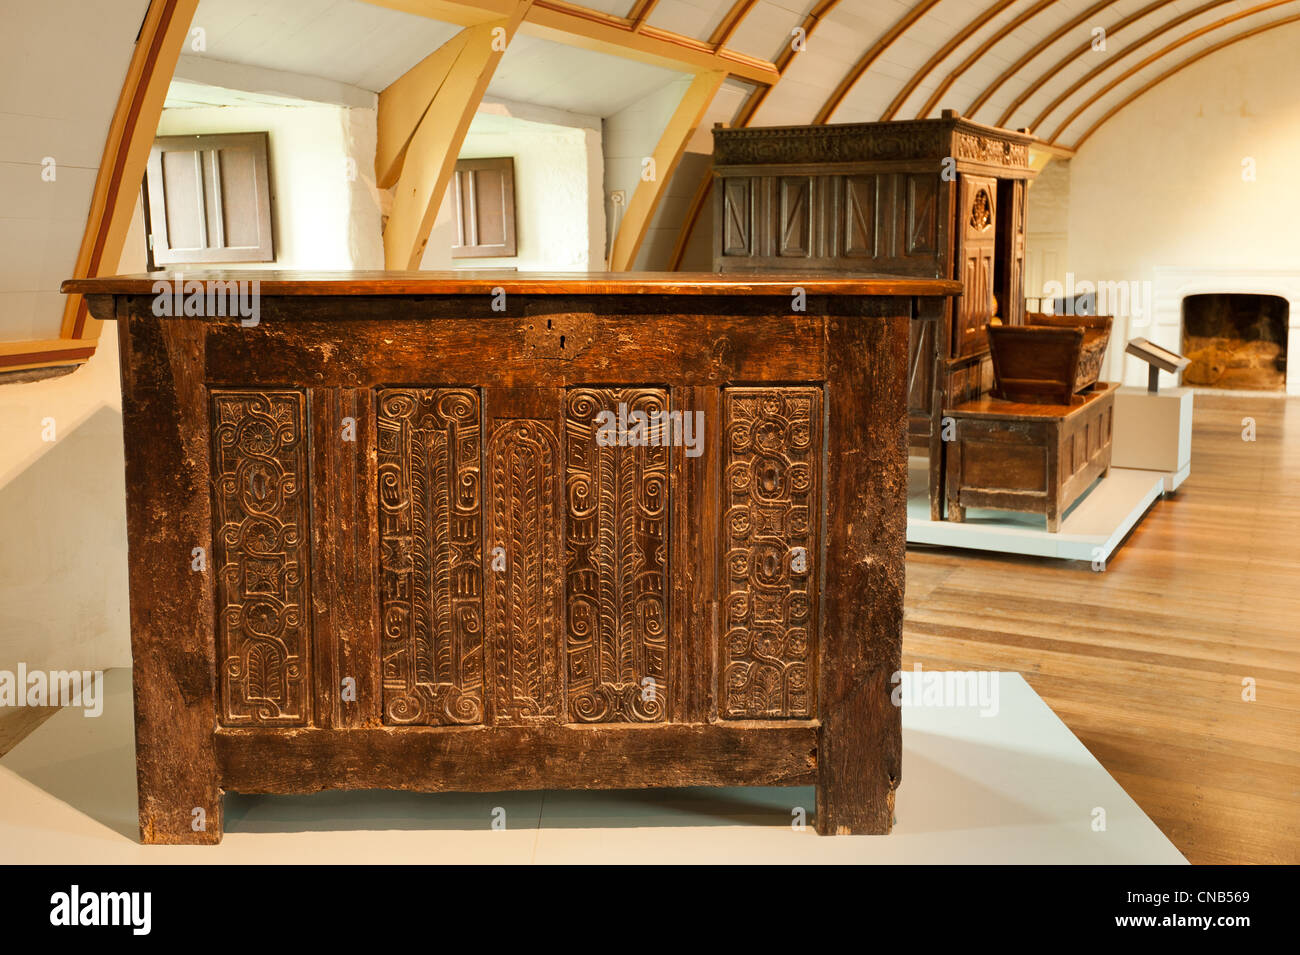 France, Finistere, Saint Vougay, antique furniture in Kerjean Castle - Stock Image